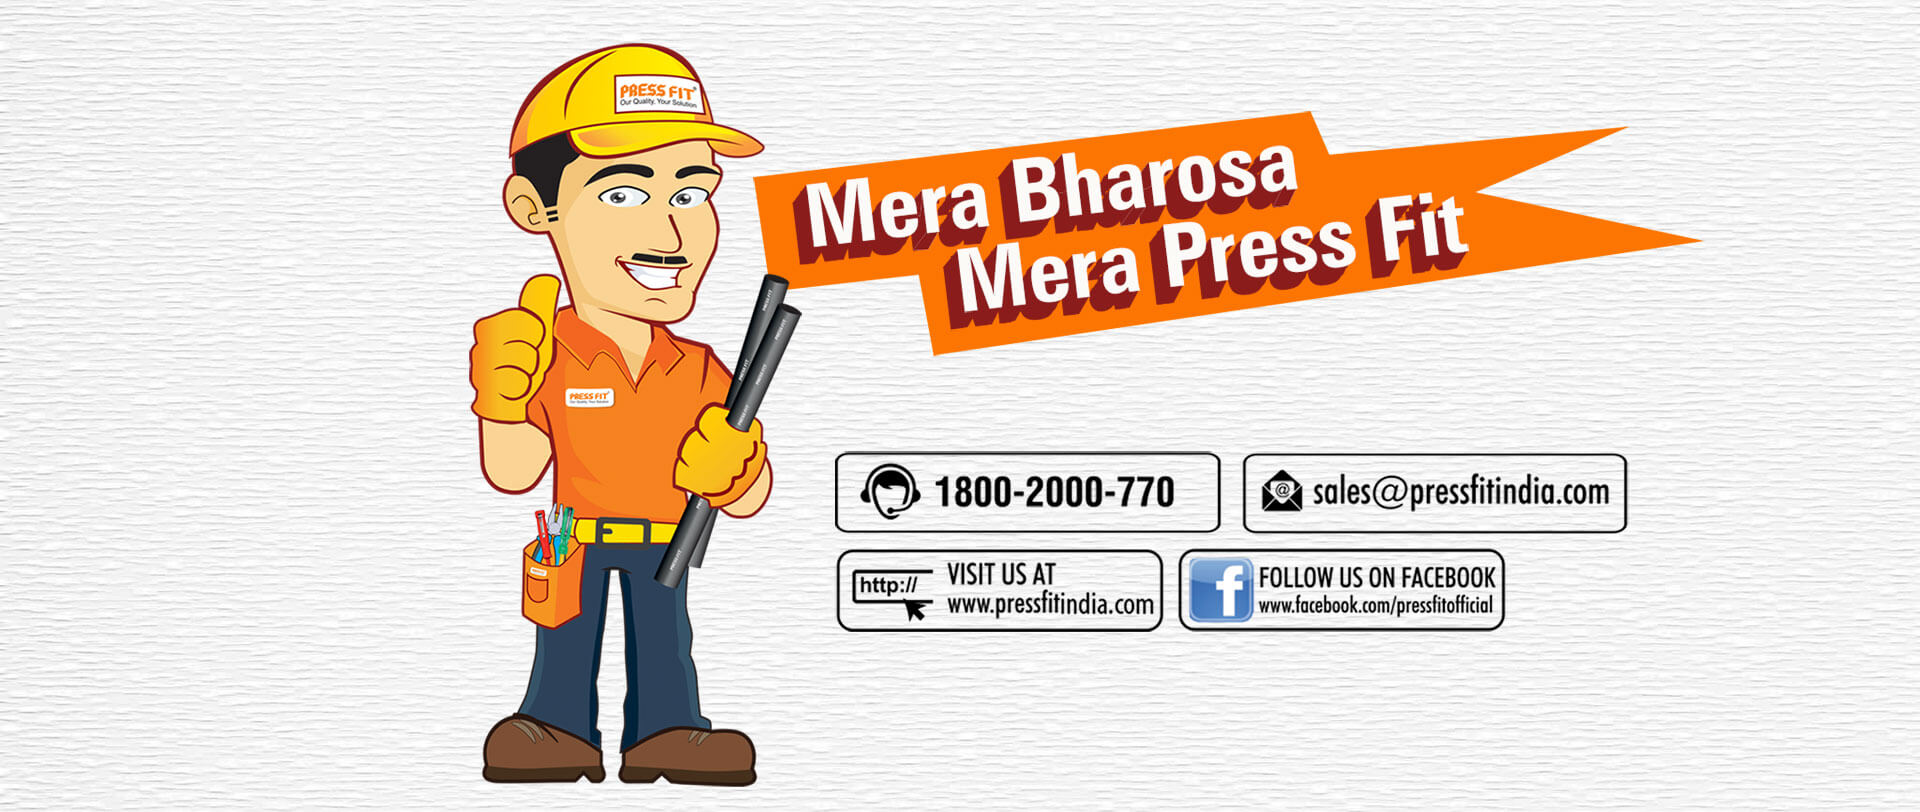 Press Fit - A one-stop solution for all your electrical needs.